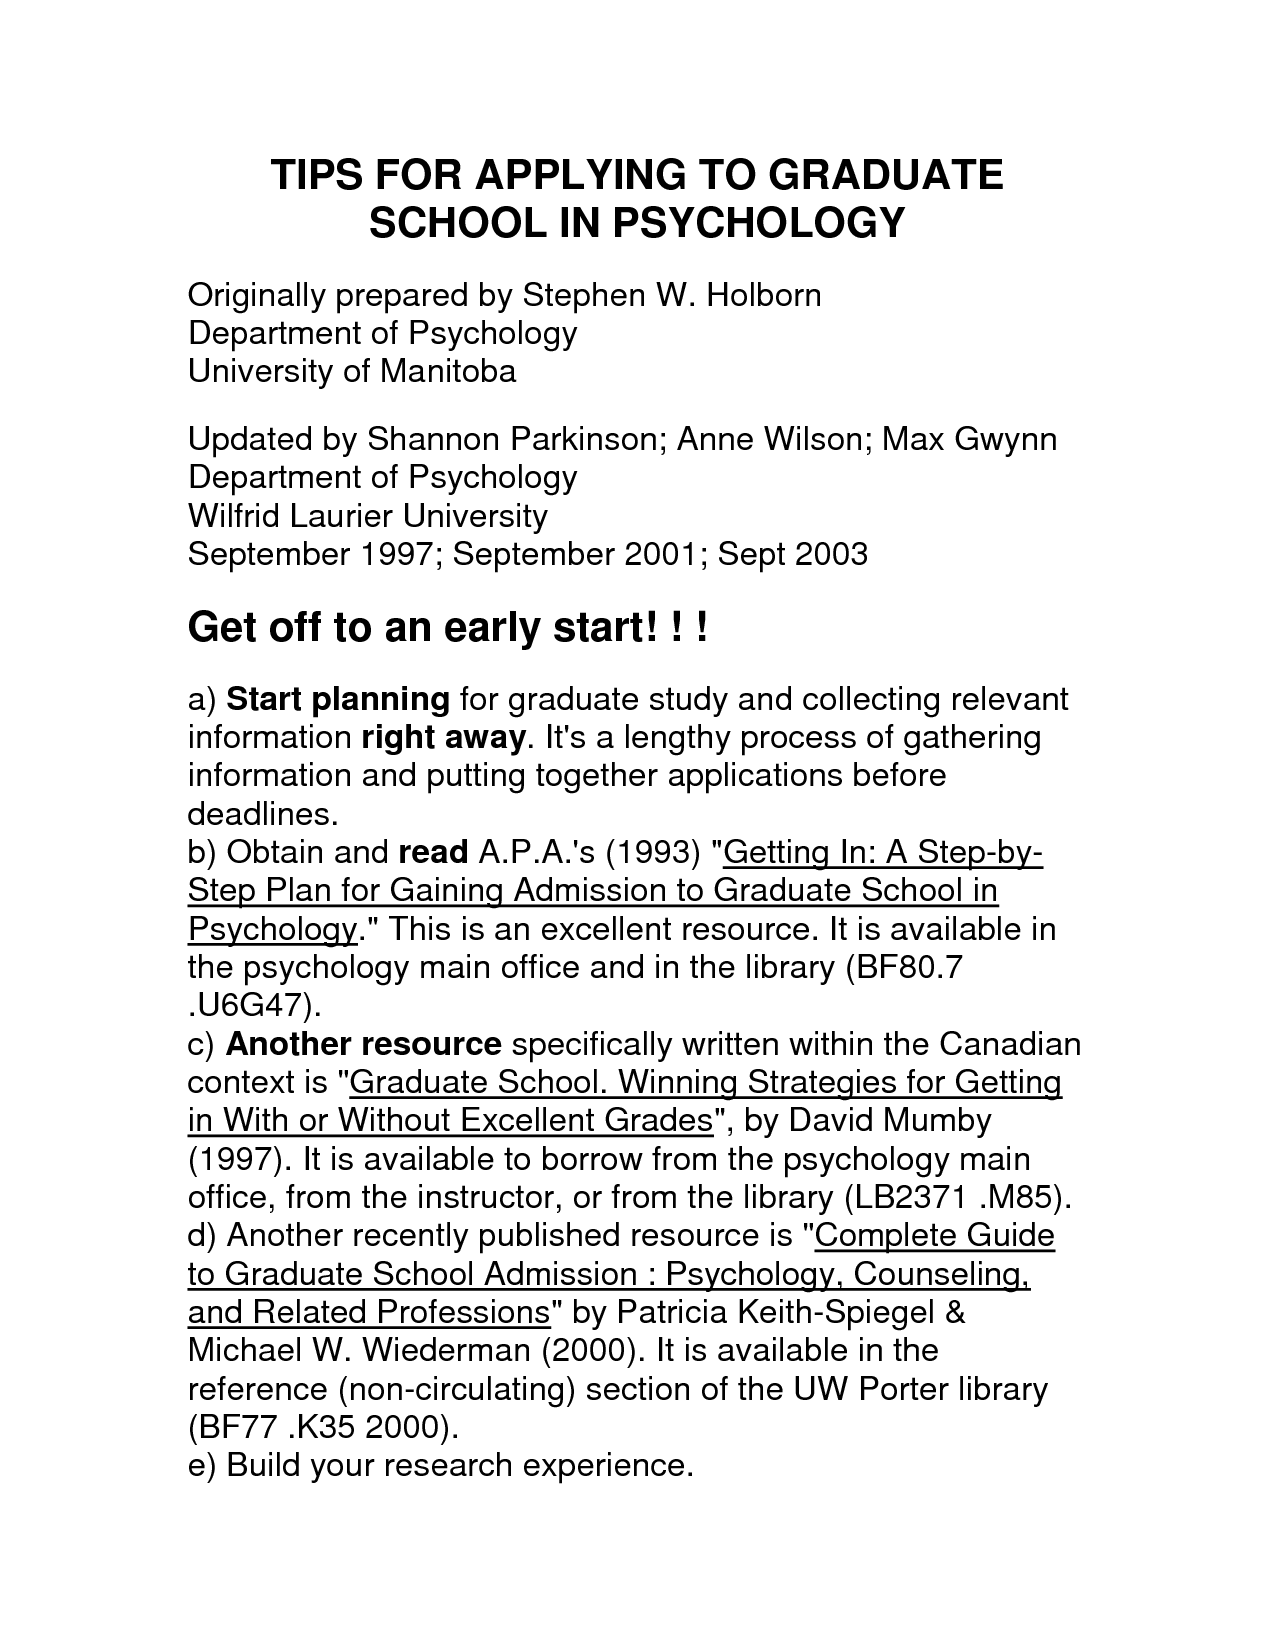 Psychology Graduate School Resume   Http://www.resumecareer.info/psychology  Sample Resume For Graduate School